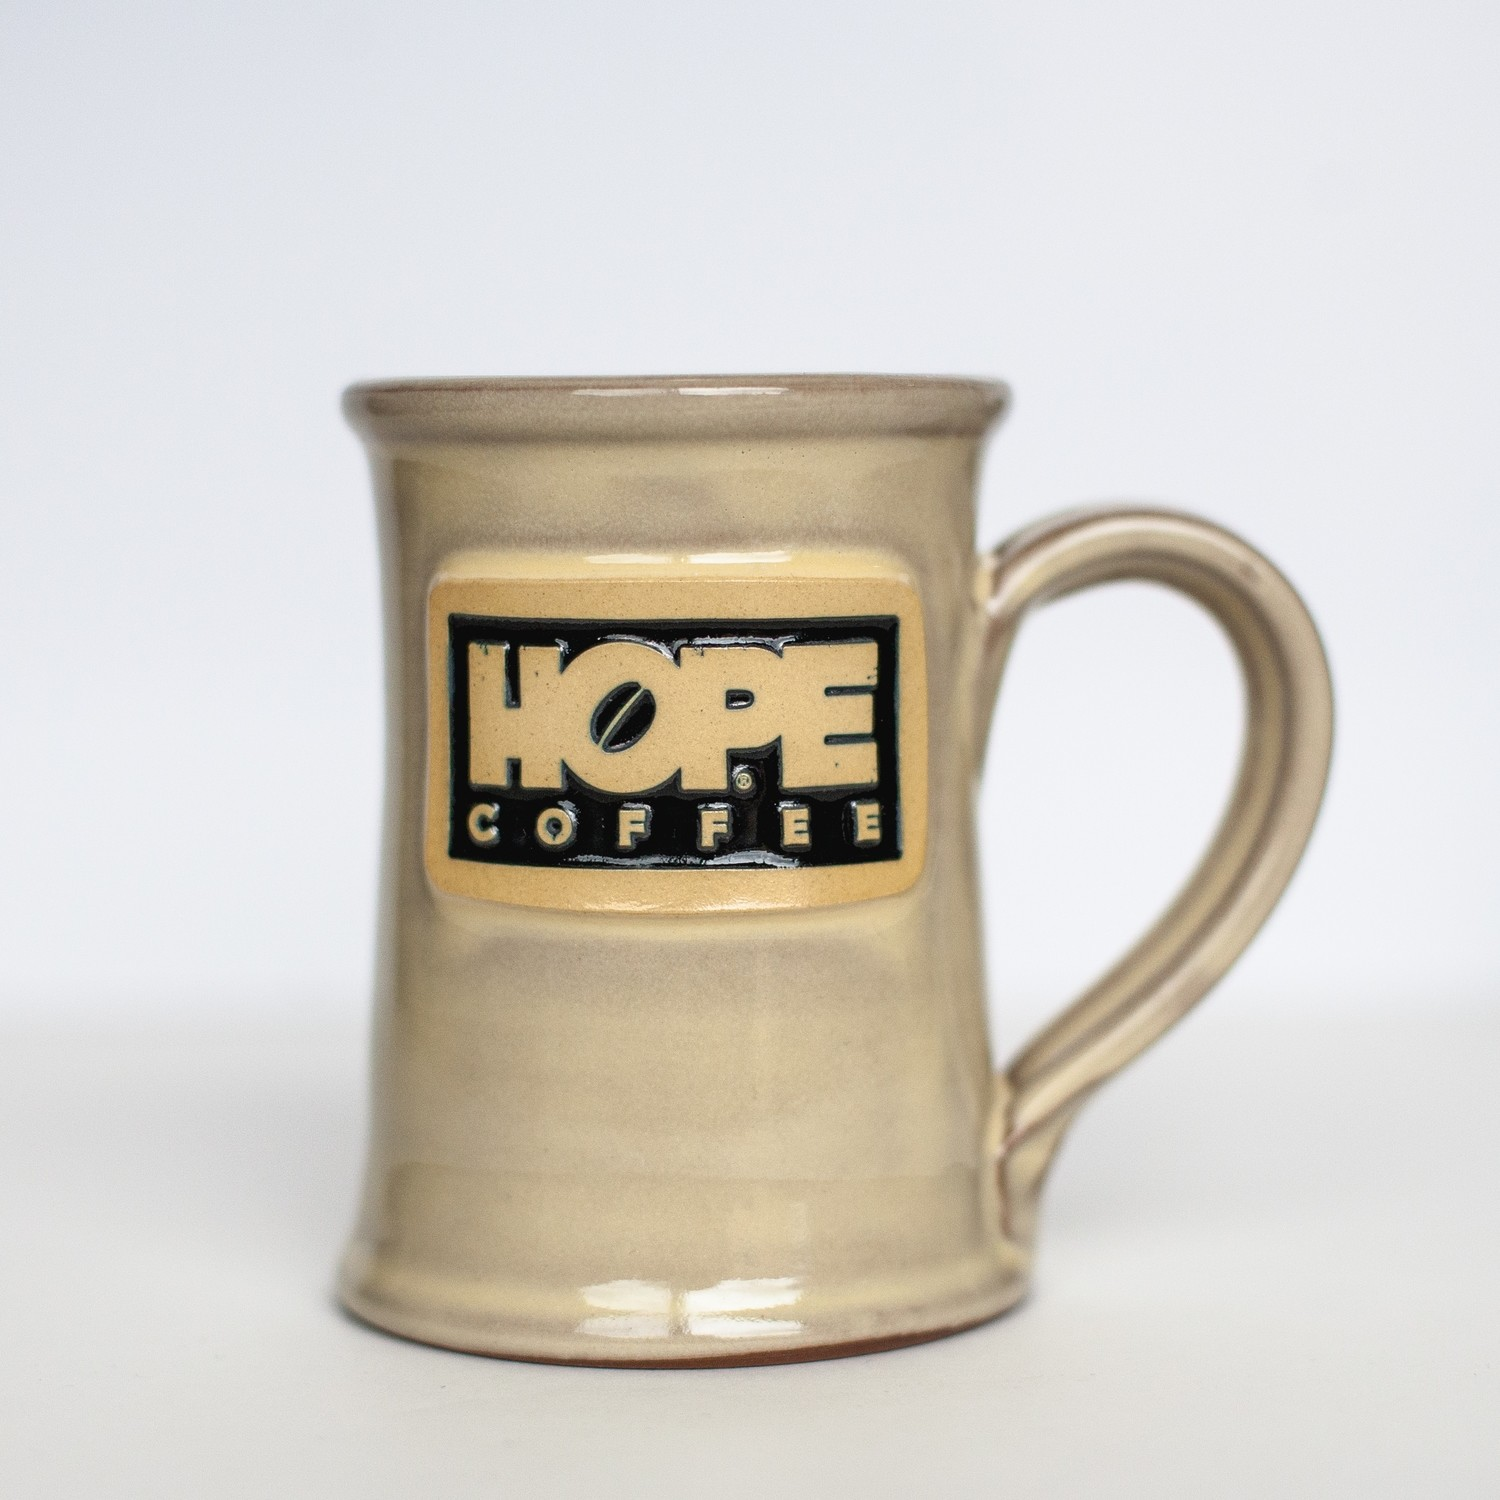 HOPE Coffee 12 oz Handcrafted Stoneware Mug - Jr Executive Style Butter Glaze